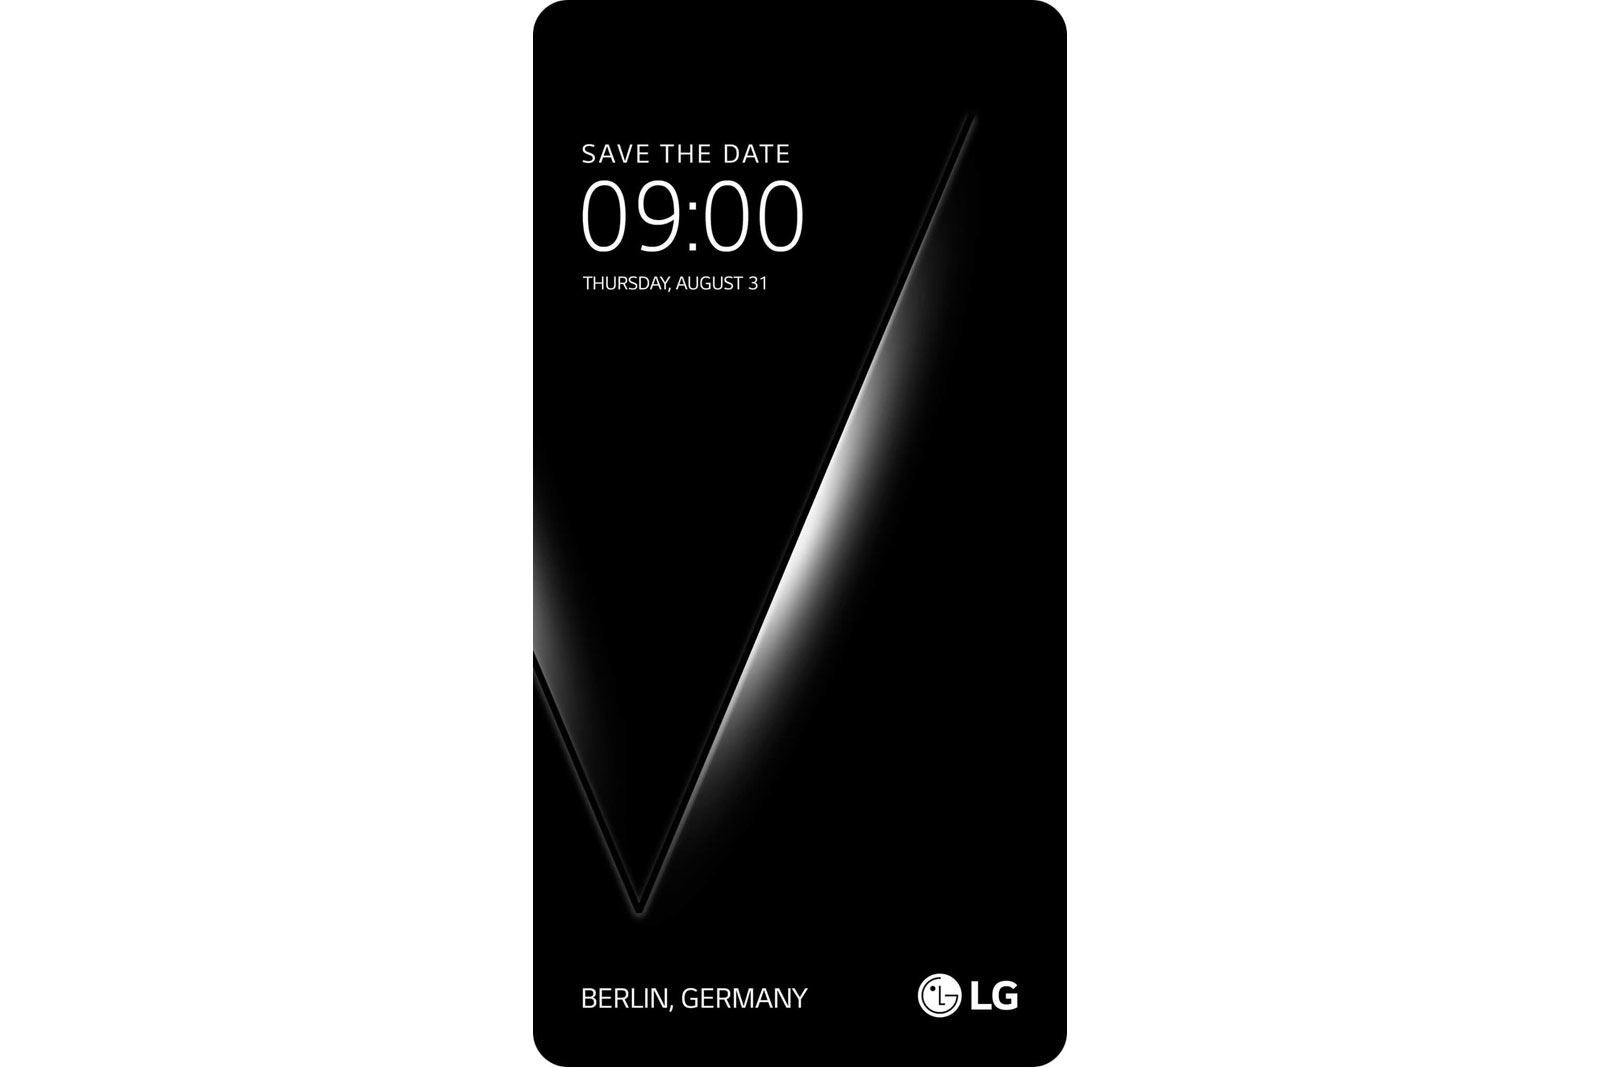 LG zeigt das V30 am 31. August in Berlin